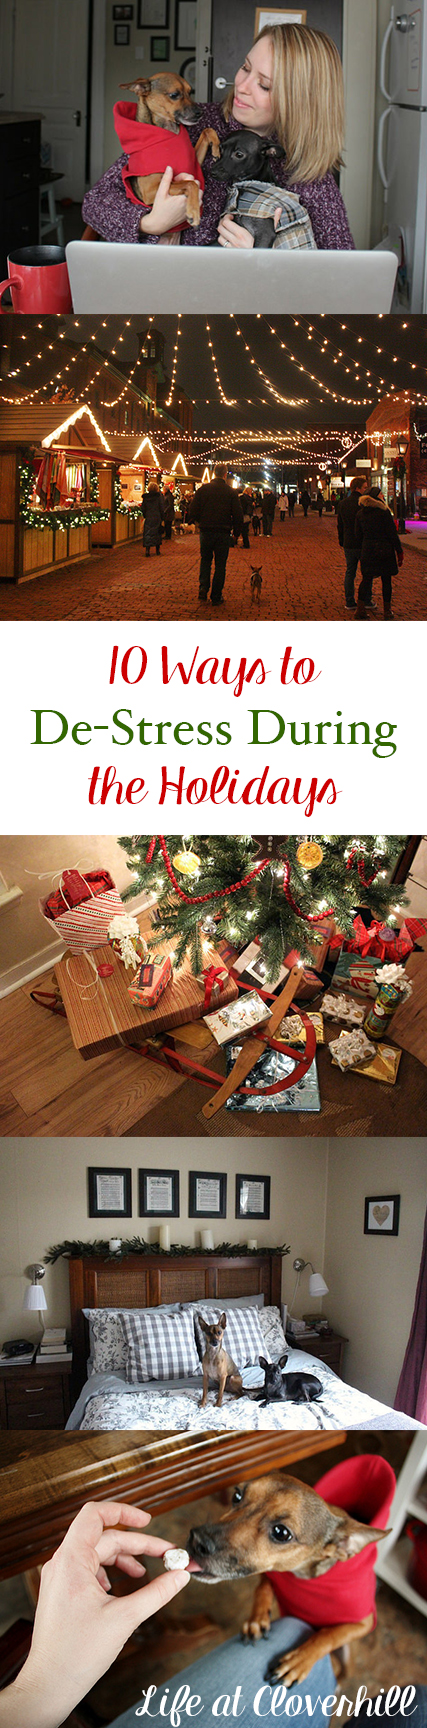 10-ways-destress-during-holidays